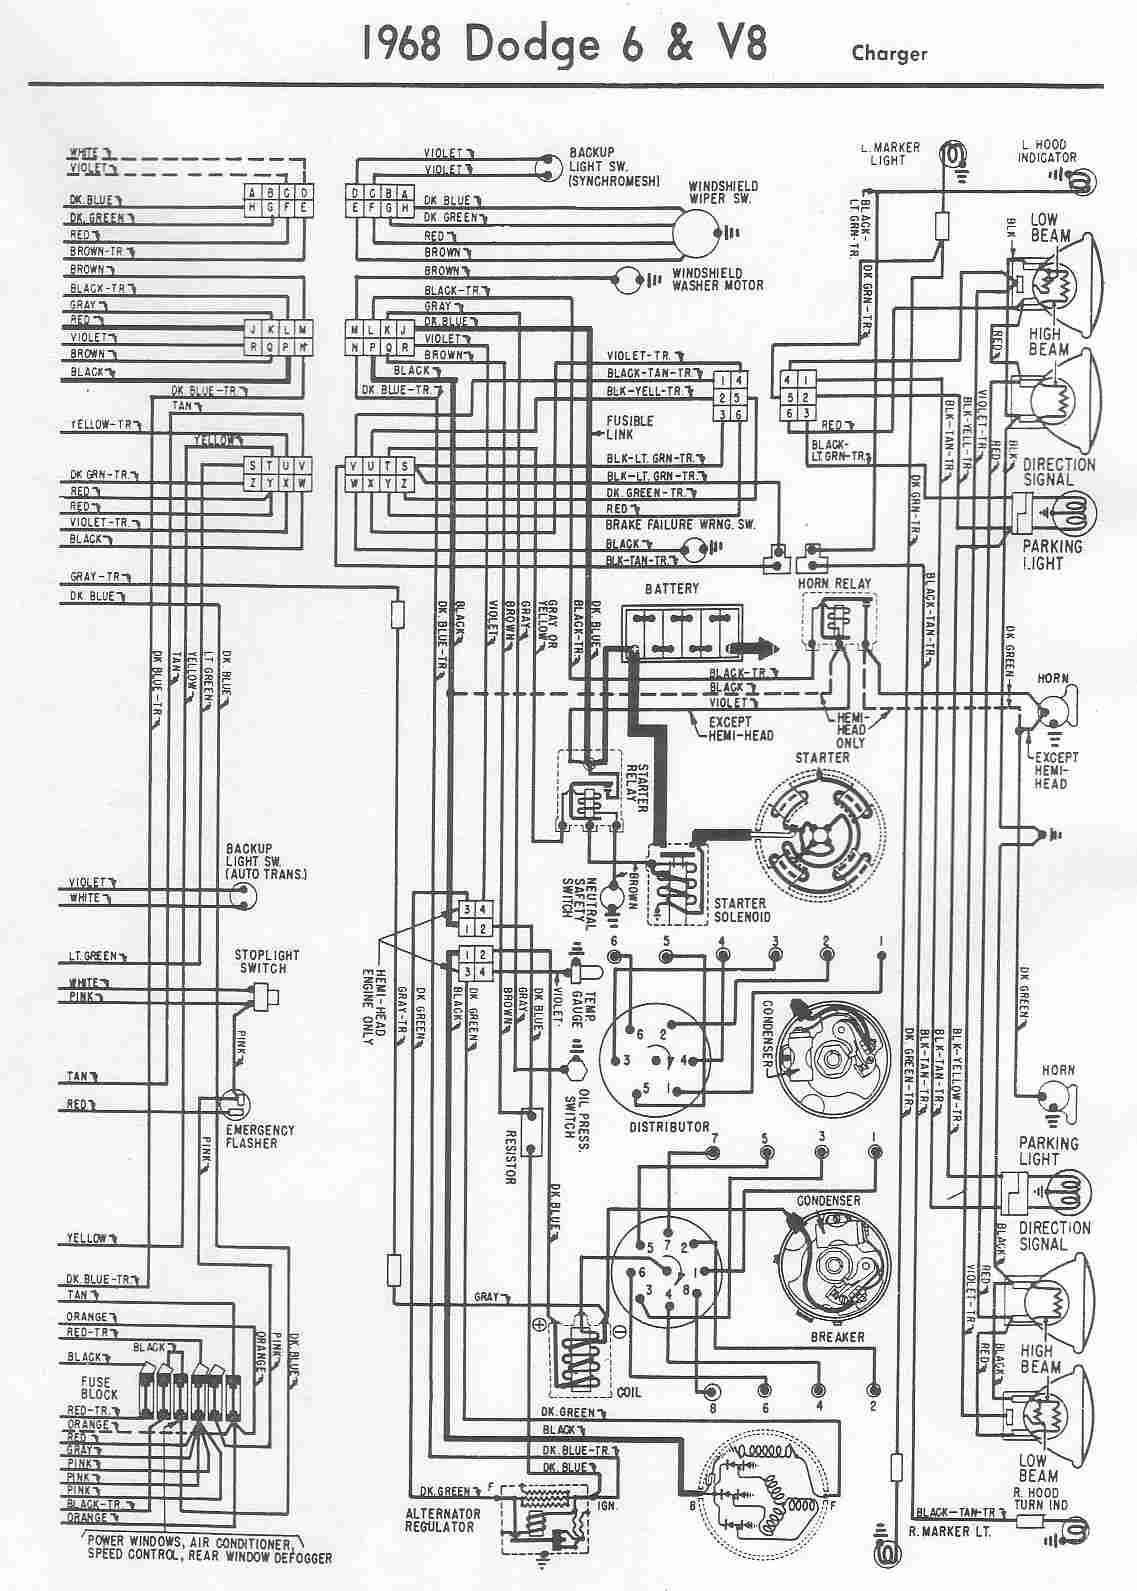 charger electrical wiring diagram of 1968 dodge 6 and v8?t=1508404771 dodge car manuals, wiring diagrams pdf & fault codes 1969 Dodge Super Bee at alyssarenee.co